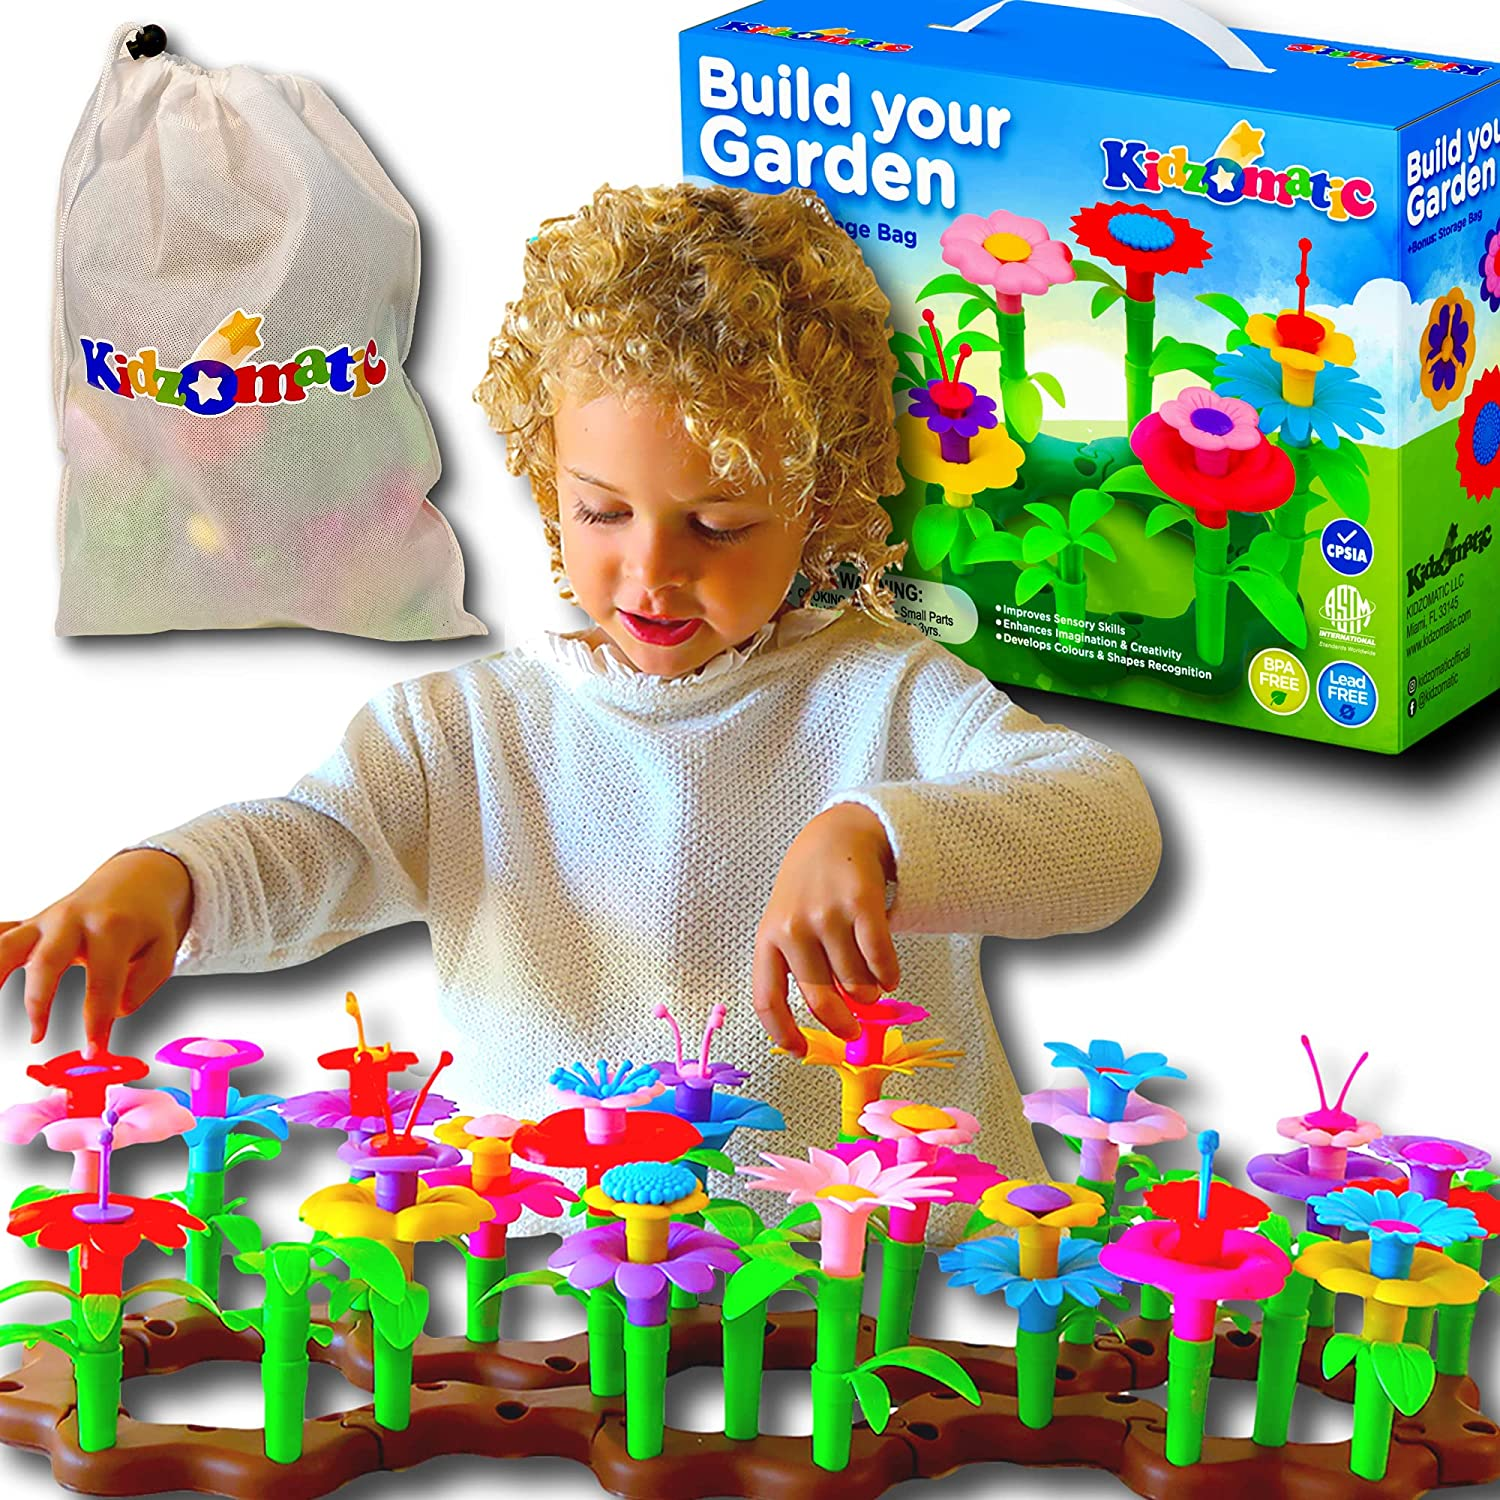 Kidzomatic Flower Garden Building Toys for Girls - Build A Garden Stem Toy - Girls Toys Age 3-6 Years Old - Suitable for Kids 3-6 Yrs of Age - Educational Toddler Flower Garden Kit